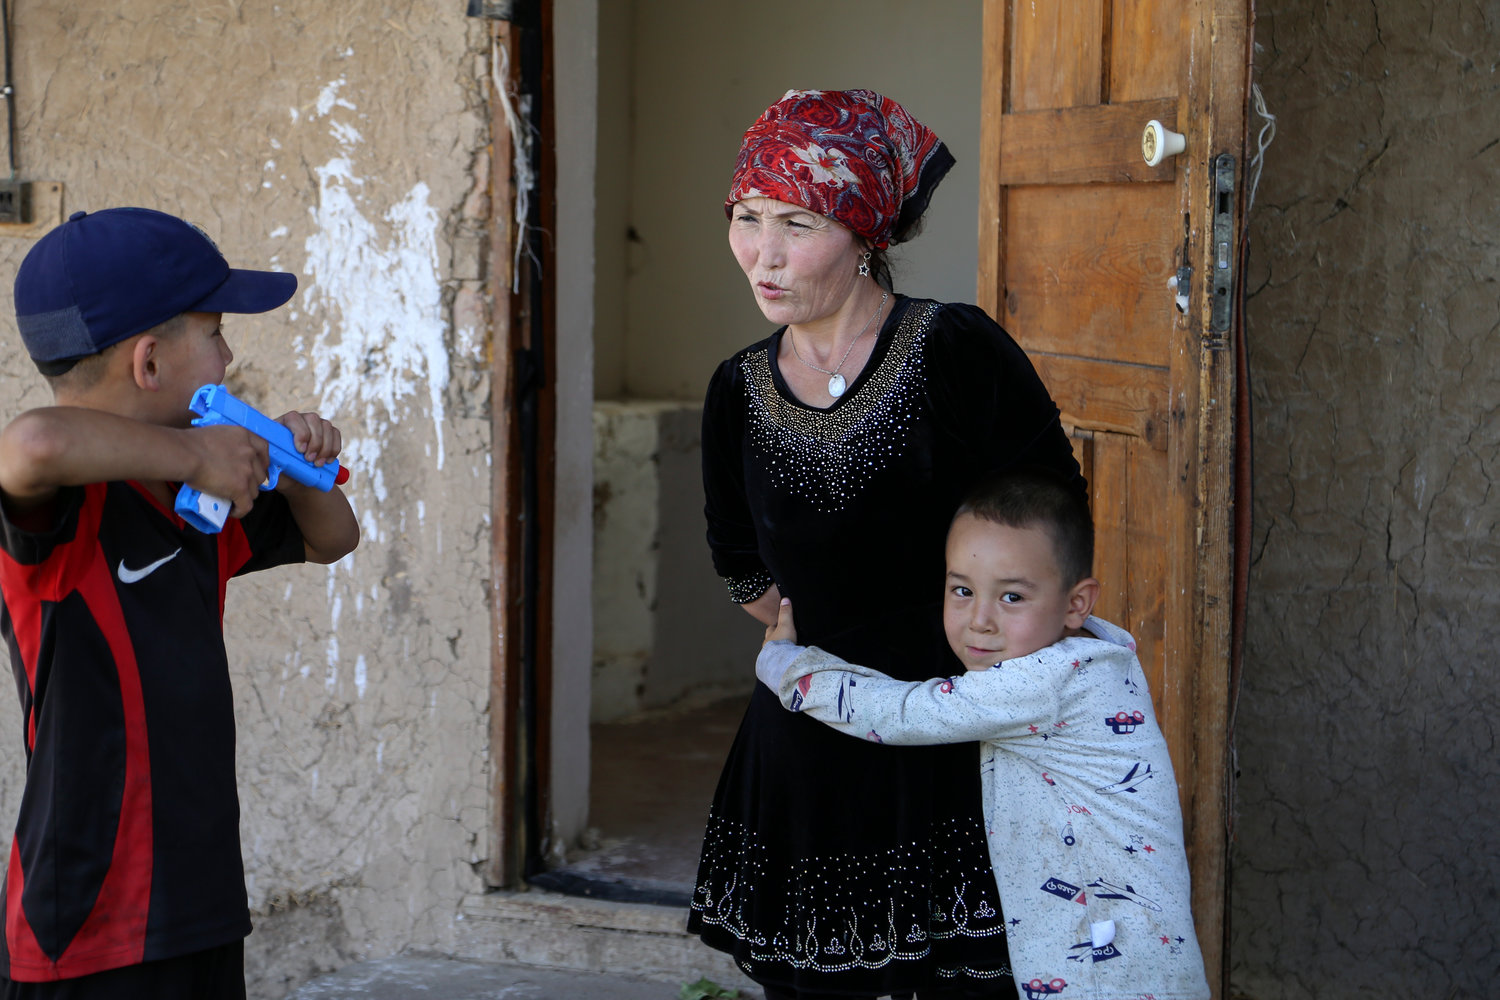 Gulnar Omirzakh plays with her son, Alif Baqytali, at their home in Shonzhy, Kazakhstan. Omirzakh, a Chinese-born ethnic Kazakh, says she was forcibly fitted with an intrauterine contraceptive device, and that authorities threatened to detain her if she didn't pay a large fine for giving birth to Alif, her third child. (AP Photo/Mukhit Toktassyn)